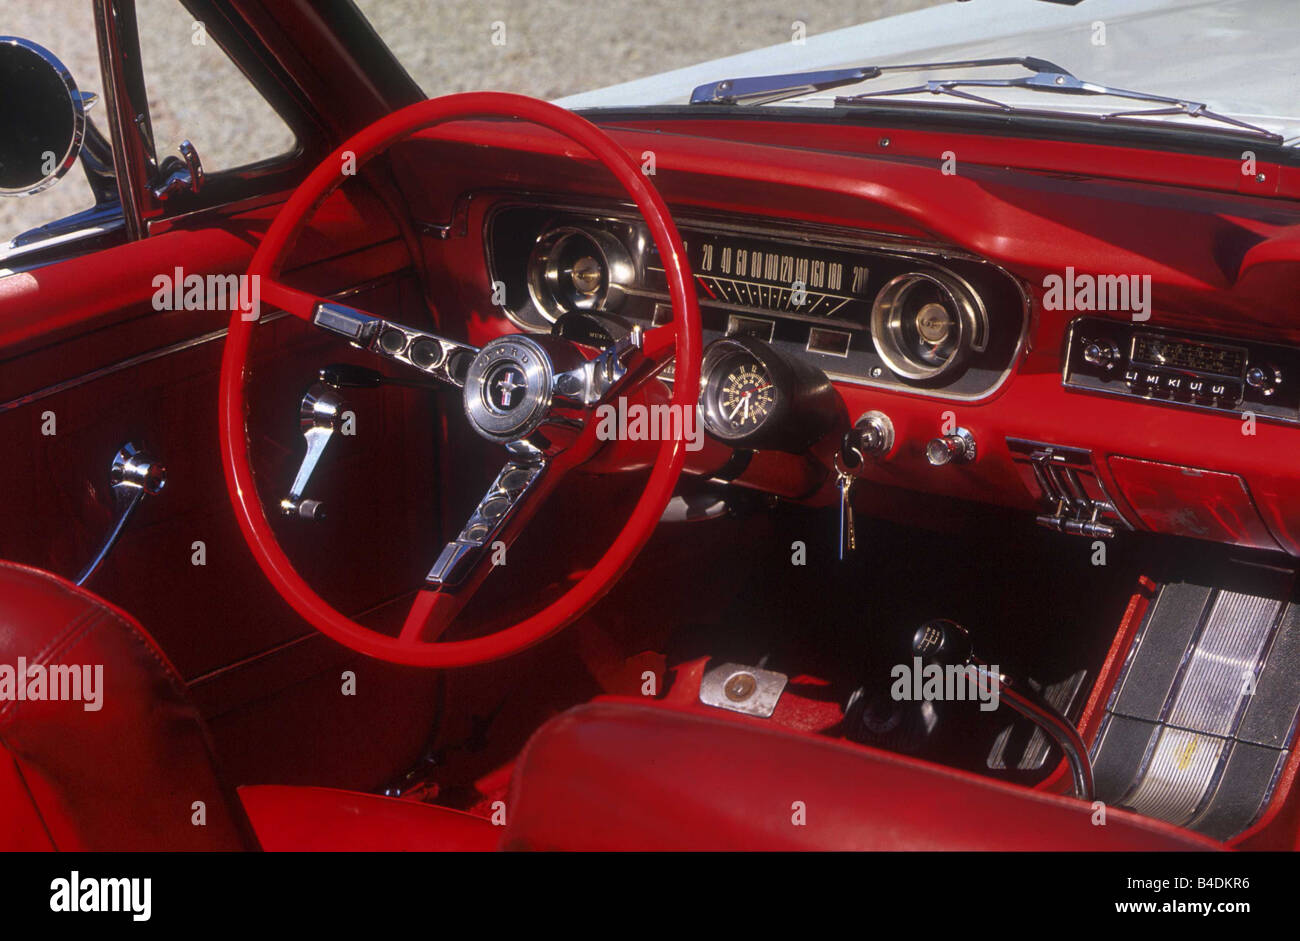 ford mustang convertible car photos ford mustang convertible car images alamy. Black Bedroom Furniture Sets. Home Design Ideas